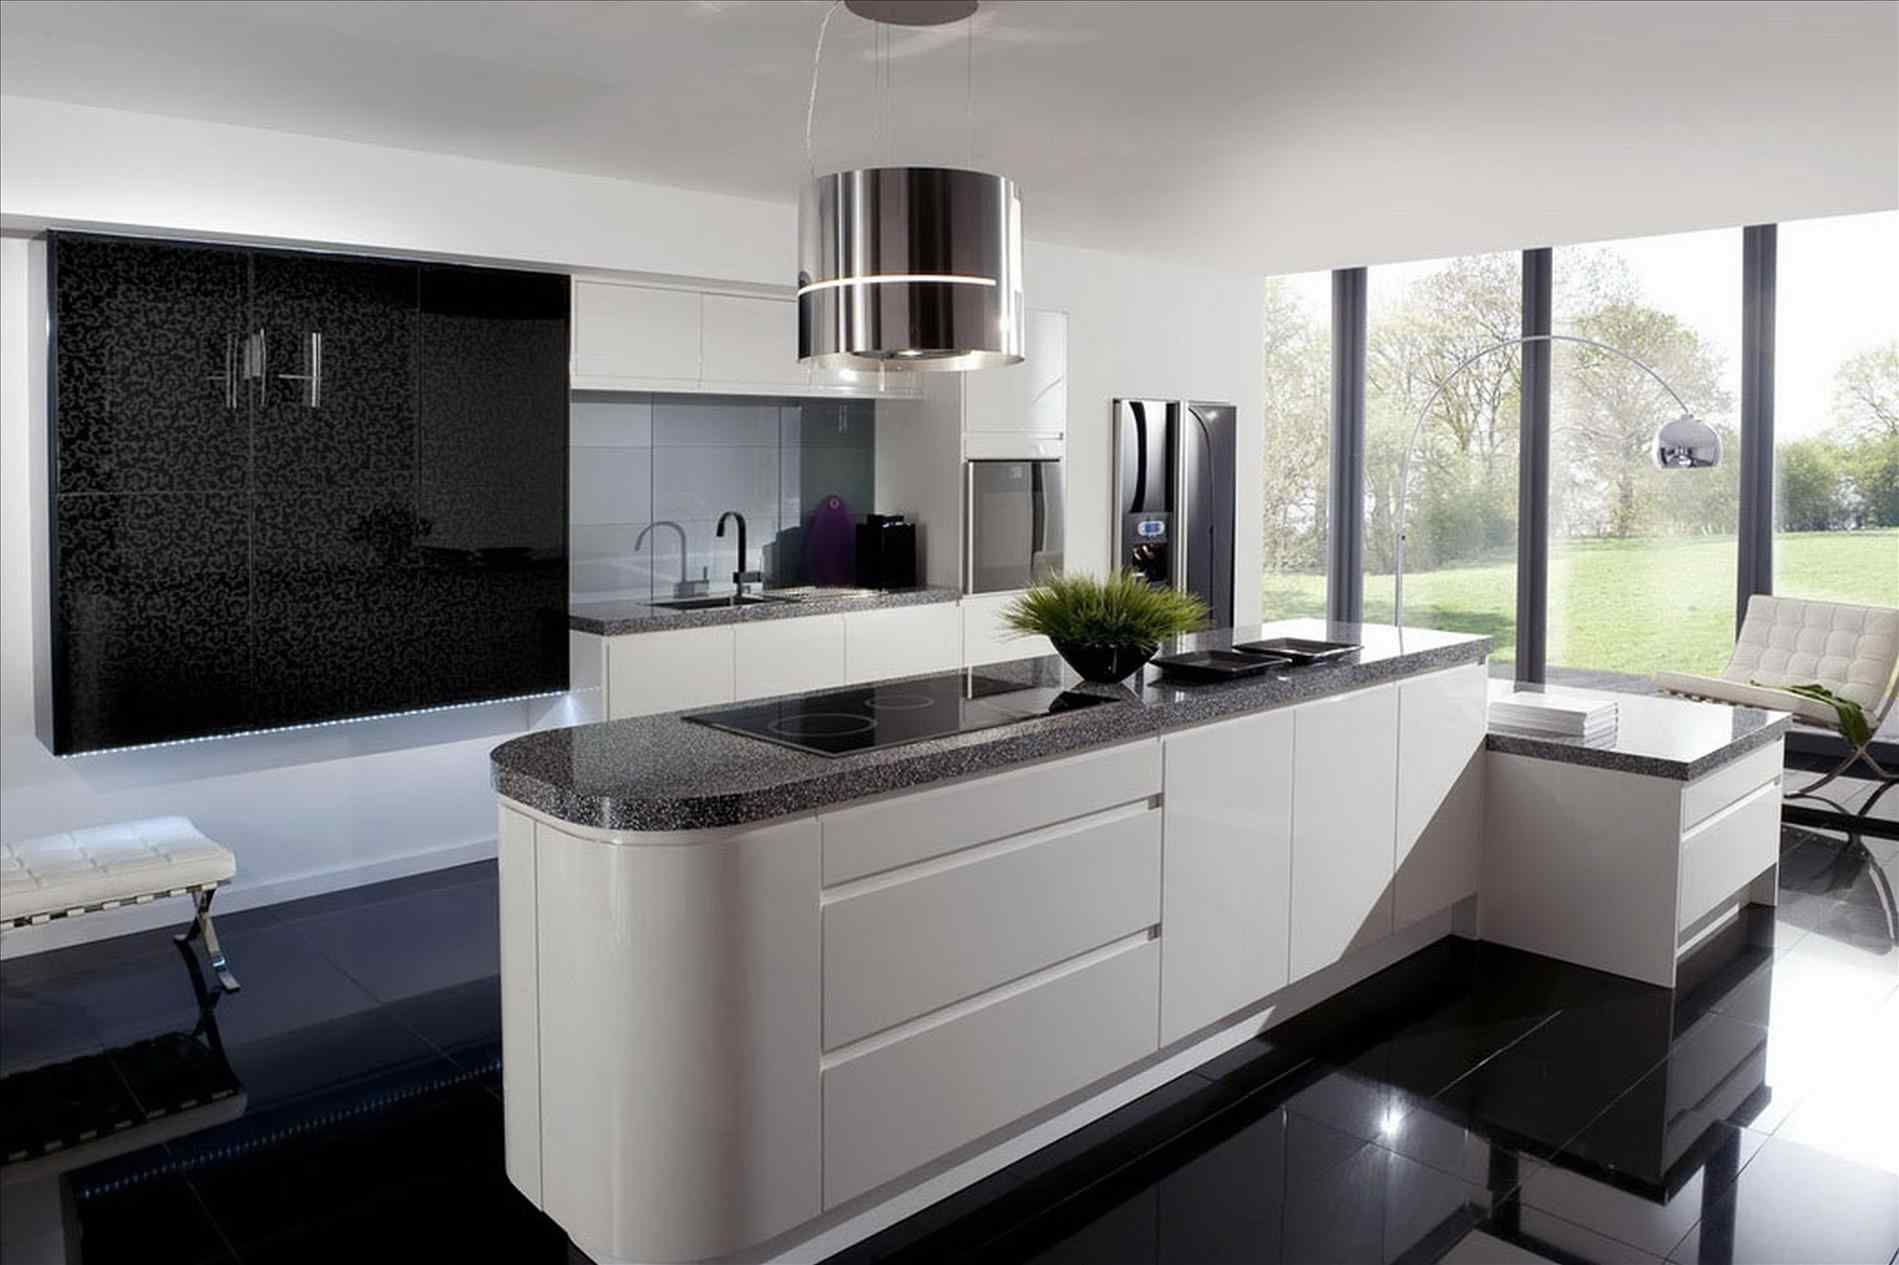 Awesome 13 Black Shiny Kitchen Cabinets Ideas For Stunning Kitchen Breakpr White Modern Kitchen Modern Kitchen Design Minimalist Kitchen Design